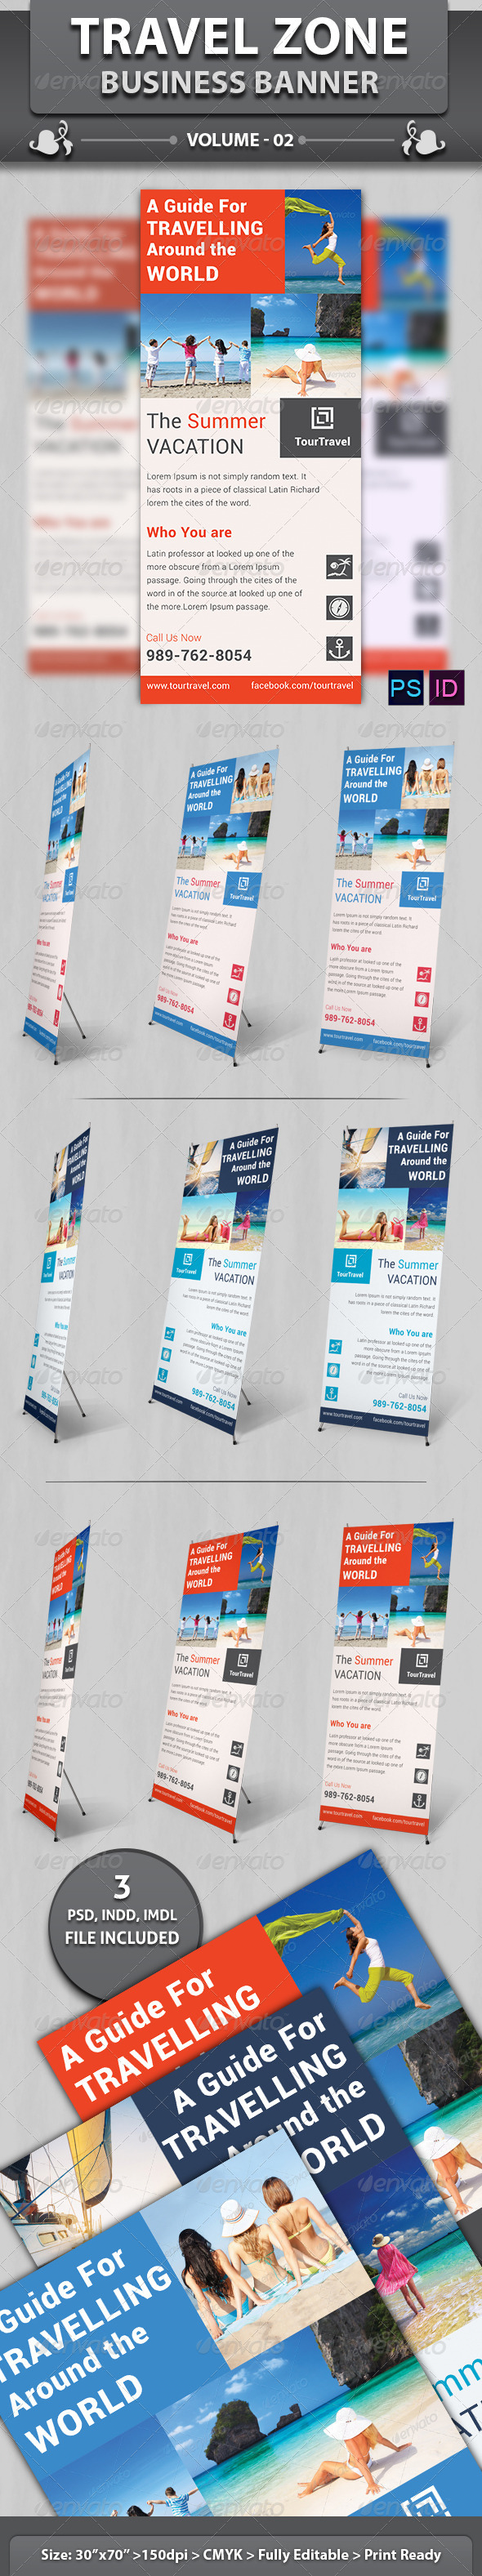 GraphicRiver Travel Zone Business Banner v2 6436961